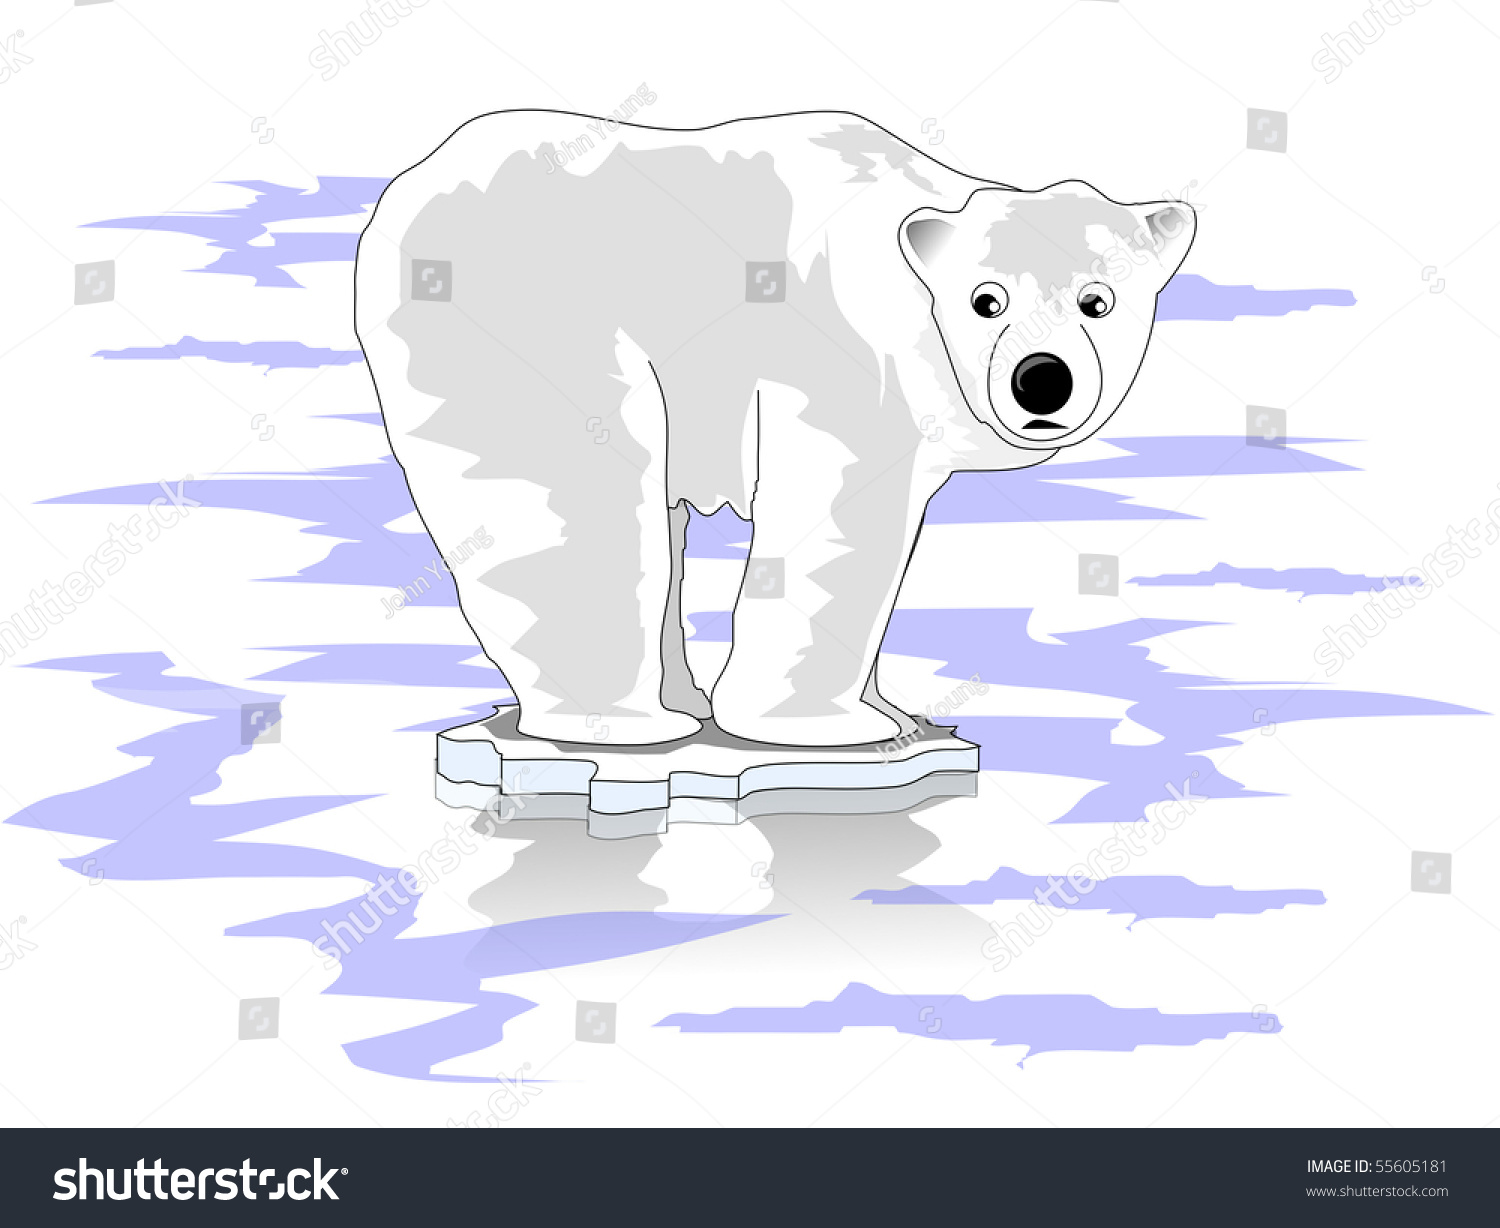 global warming effects on polar bears essay In the recent years, different environmental studies highlight the effect of global warming on polar bears polar bears are one of those species which have been directly affected by global.